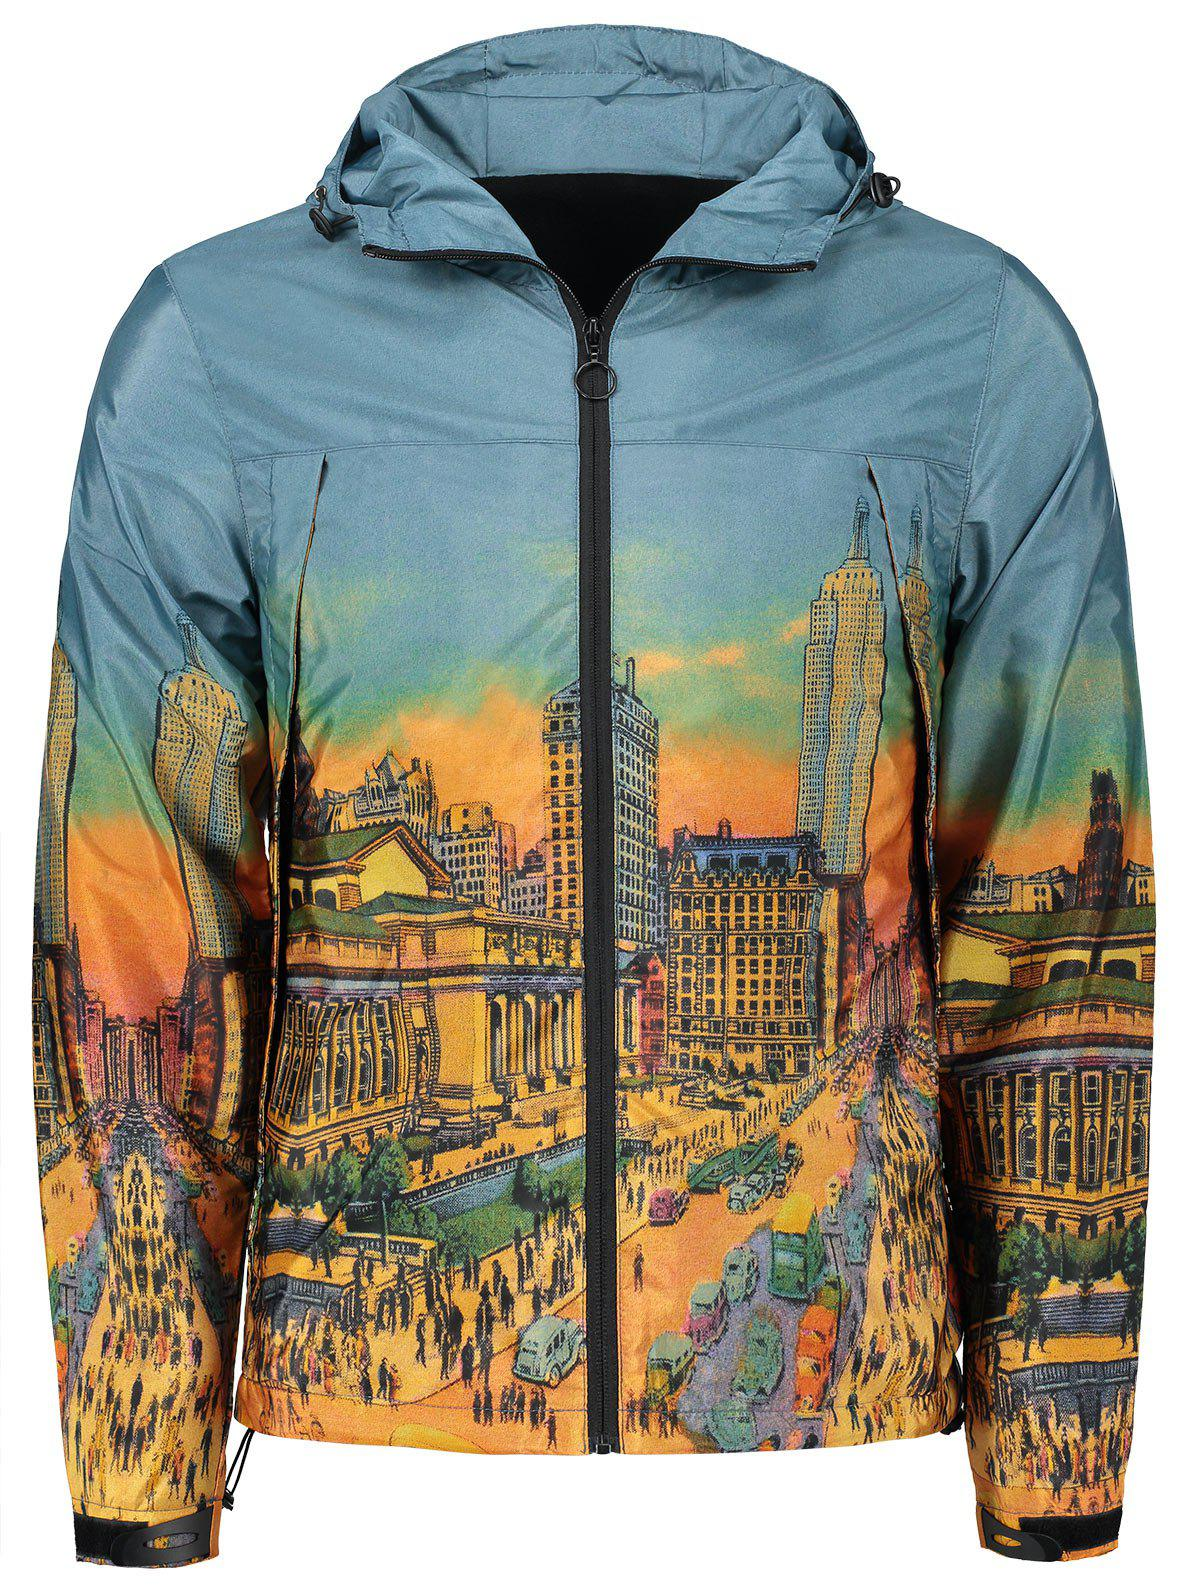 Affordable Cartoon City Streetscape Print Zipper Up Windbreaker